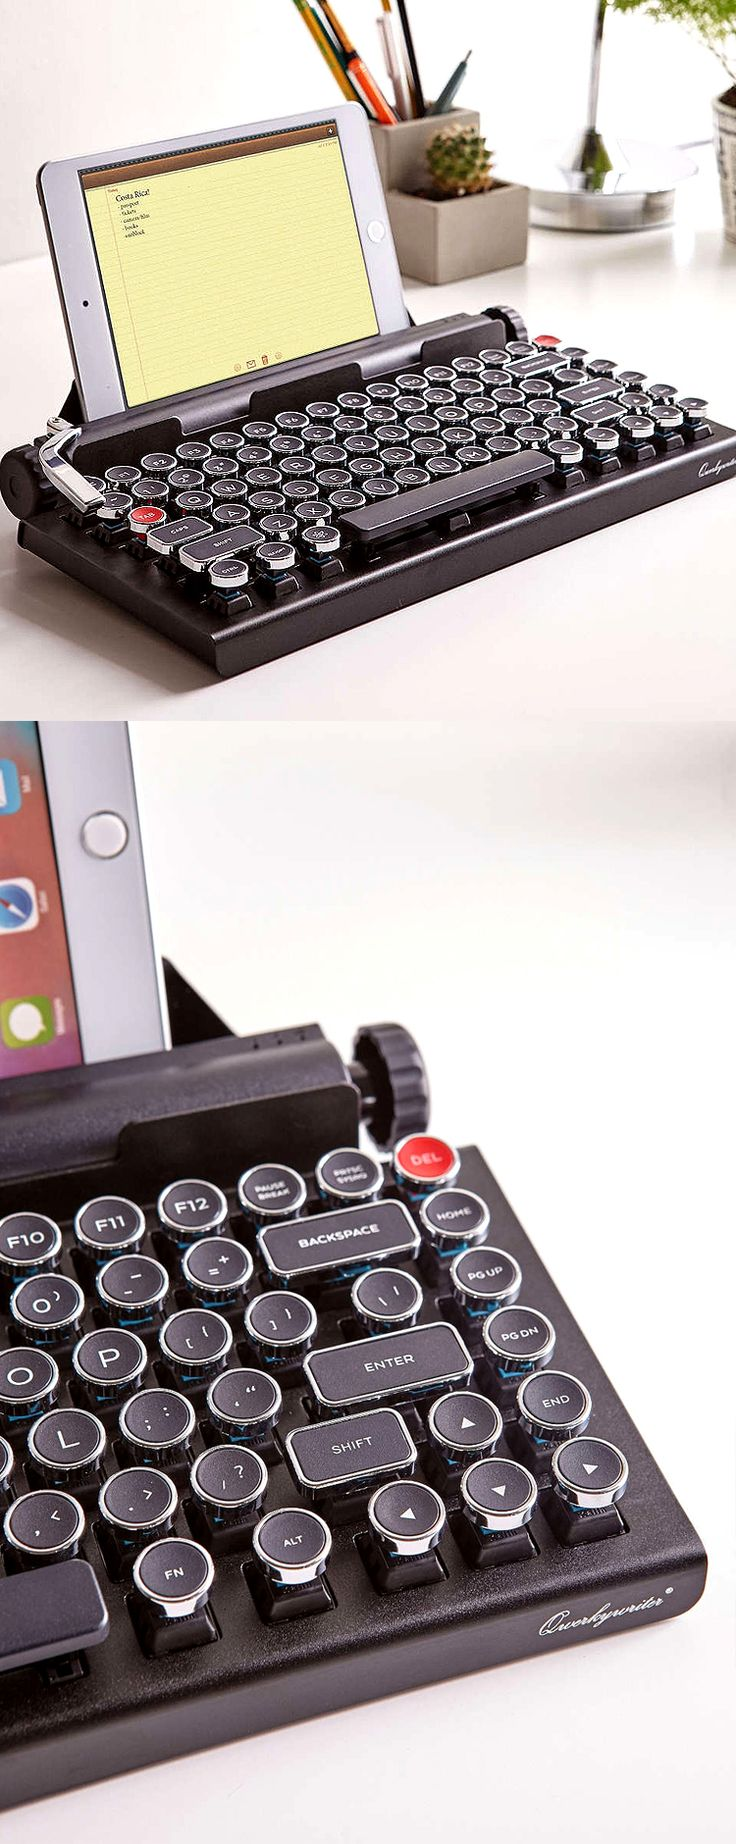 17 best images about good gifts for writers bring back nostalgic memories enjoy this vintage keyboard while connecting wirelessly to any of your